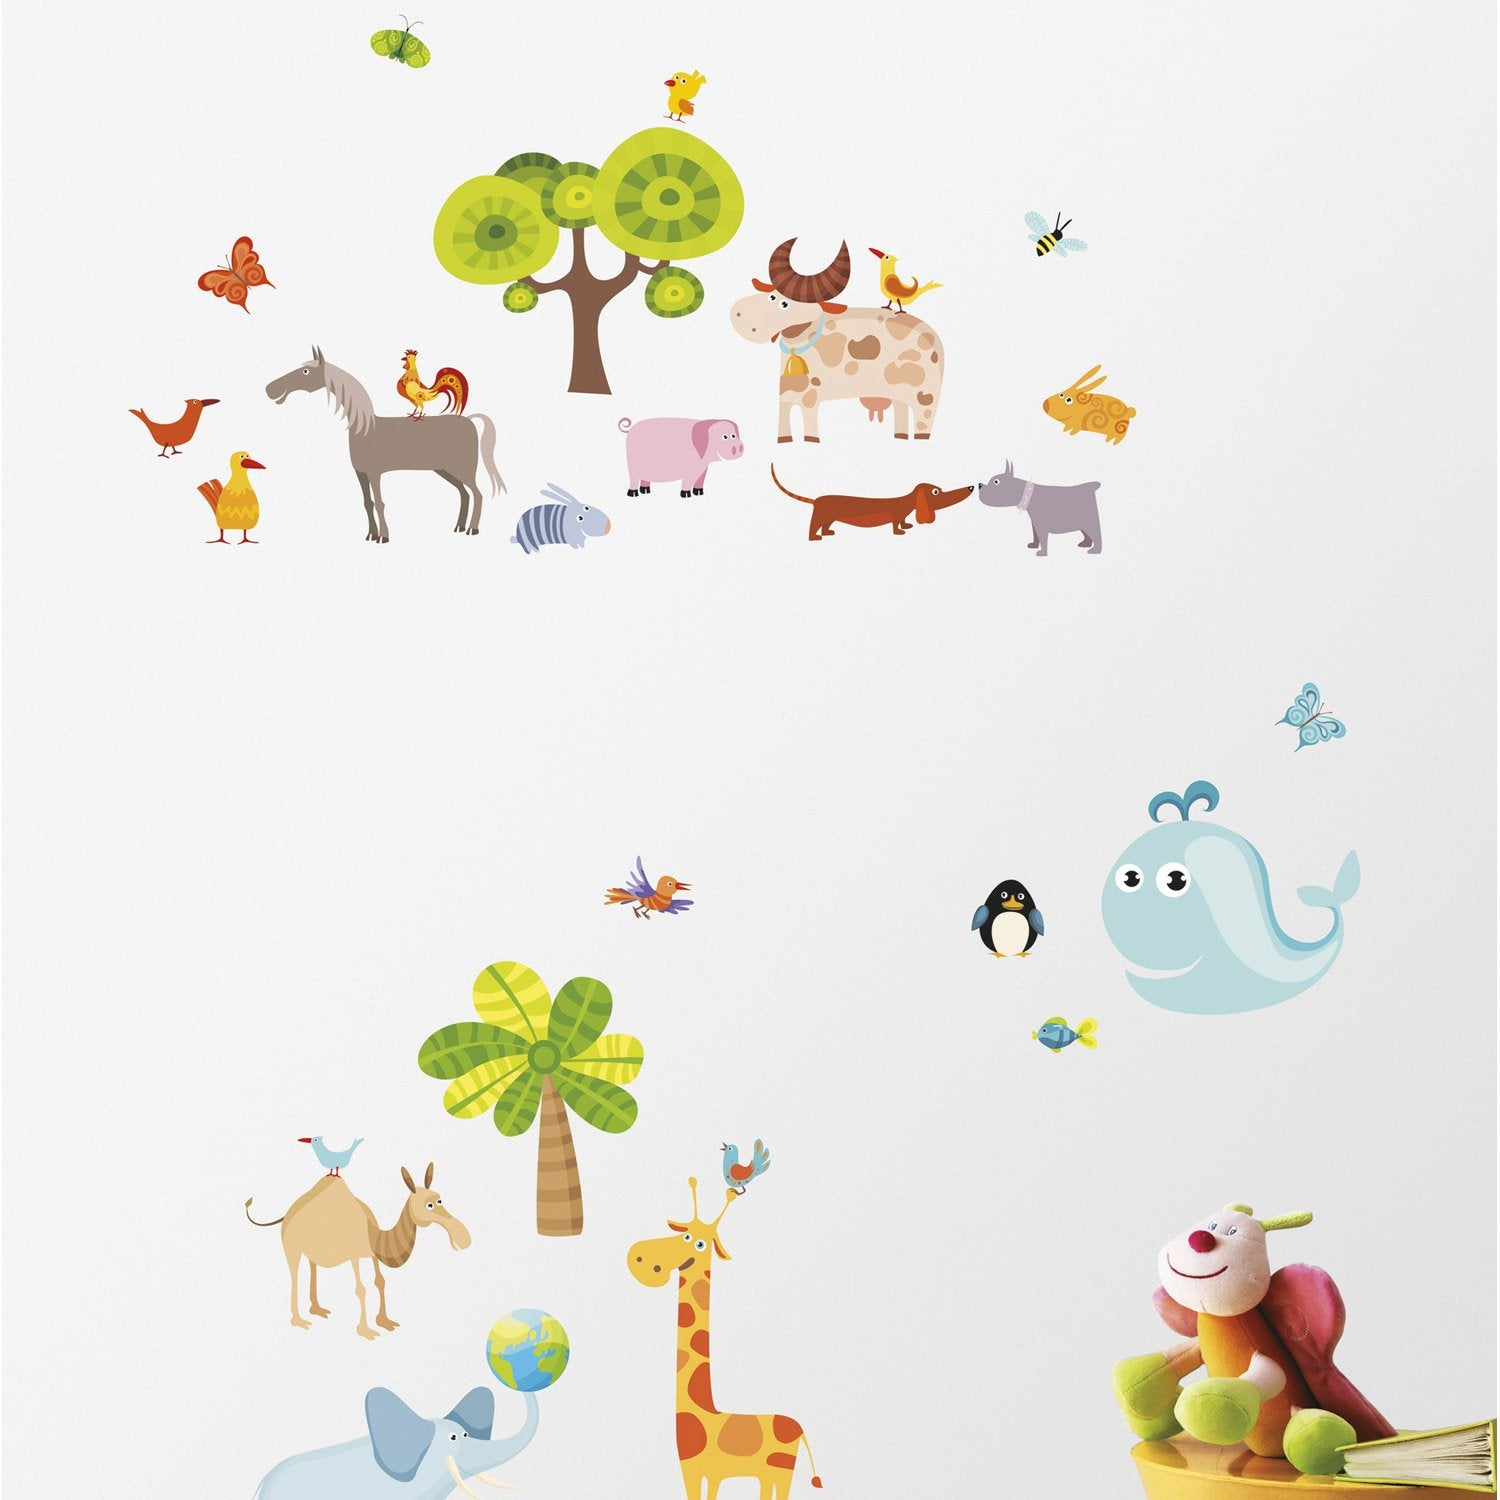 Sticker planet 23 5 cm x 67 cm leroy merlin - Leroy merlin plantes ...